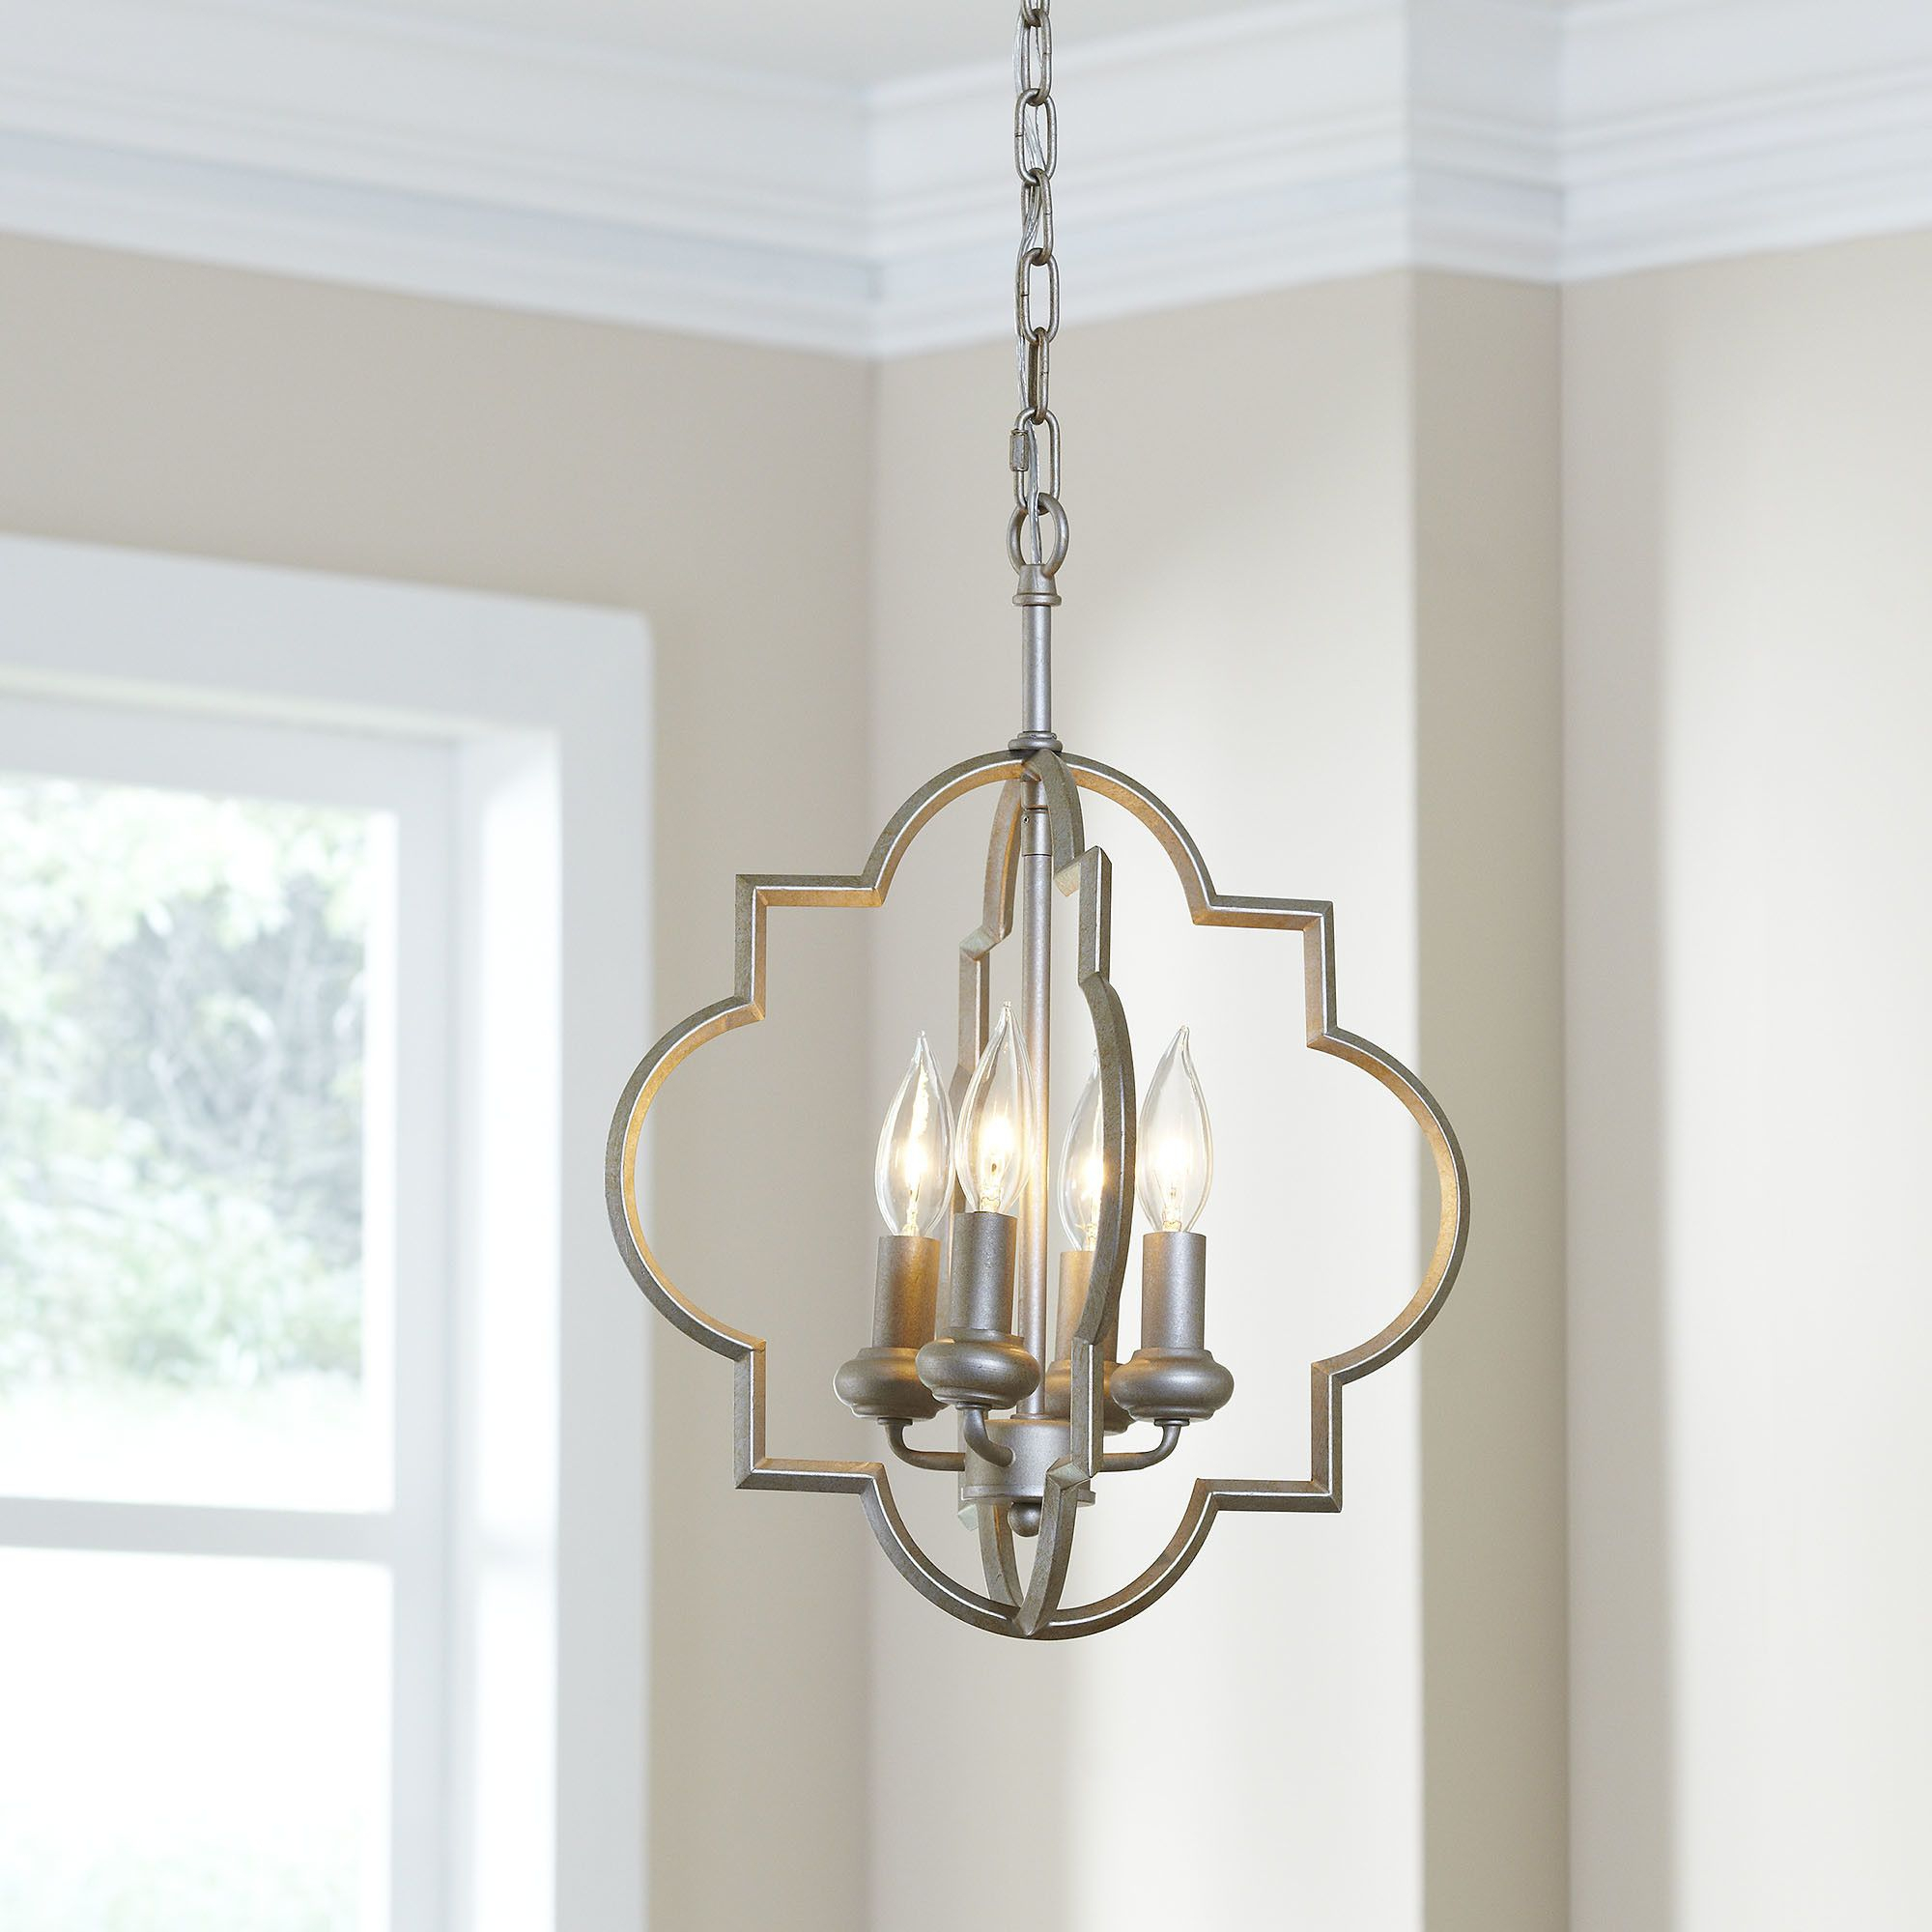 Hartley 4 Light Geometric Pendant | The Perfect Piece With Regard To Kaycee 4 Light Geometric Chandeliers (View 21 of 30)